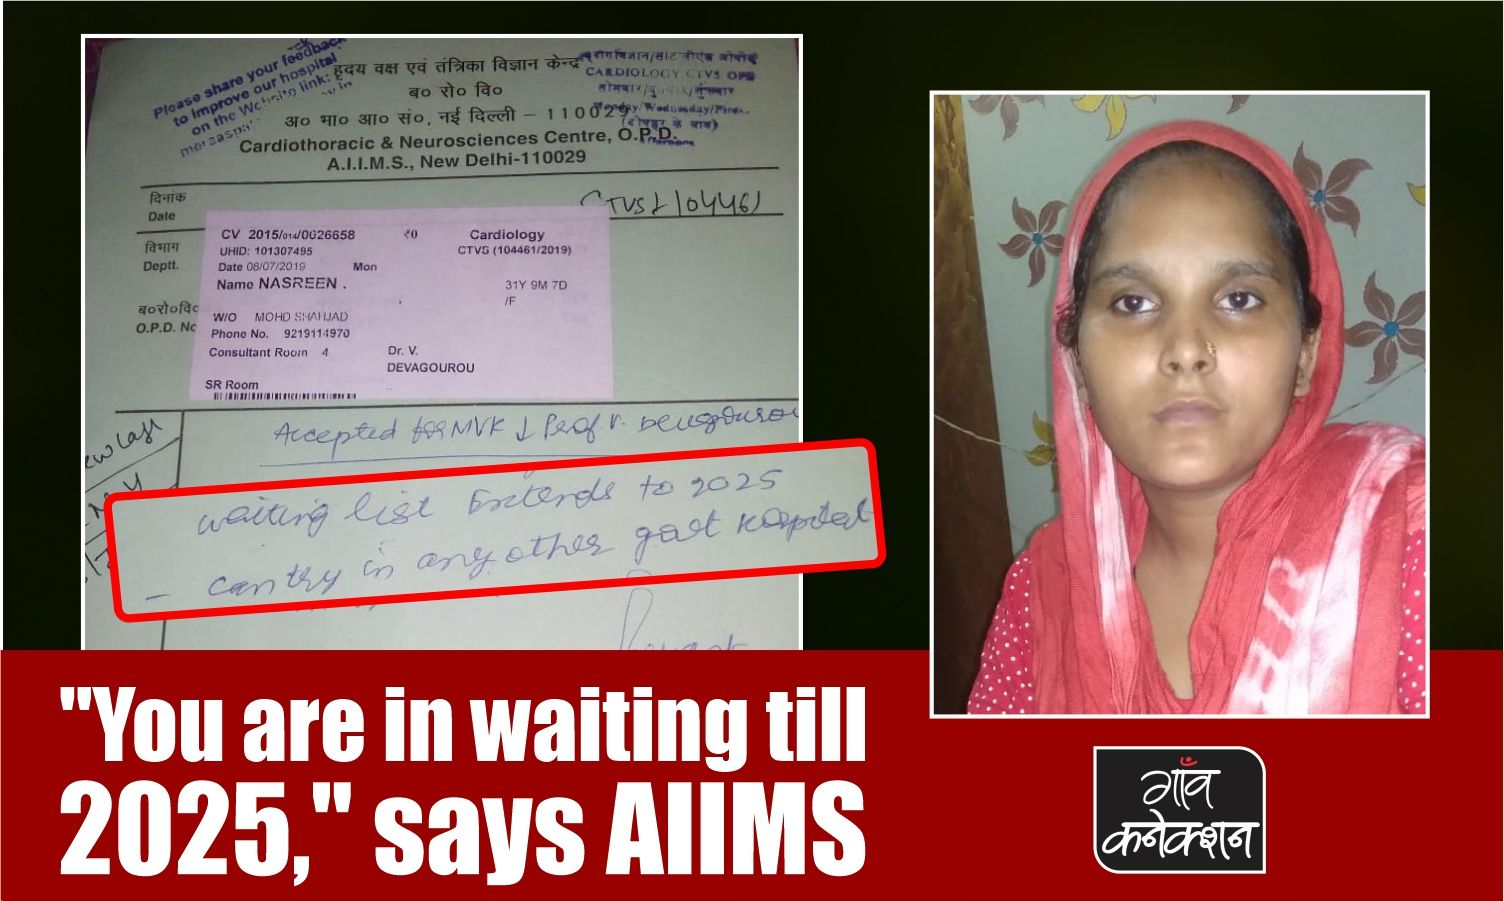 She needs immediate heart surgery. AIIMS says come back in 2025